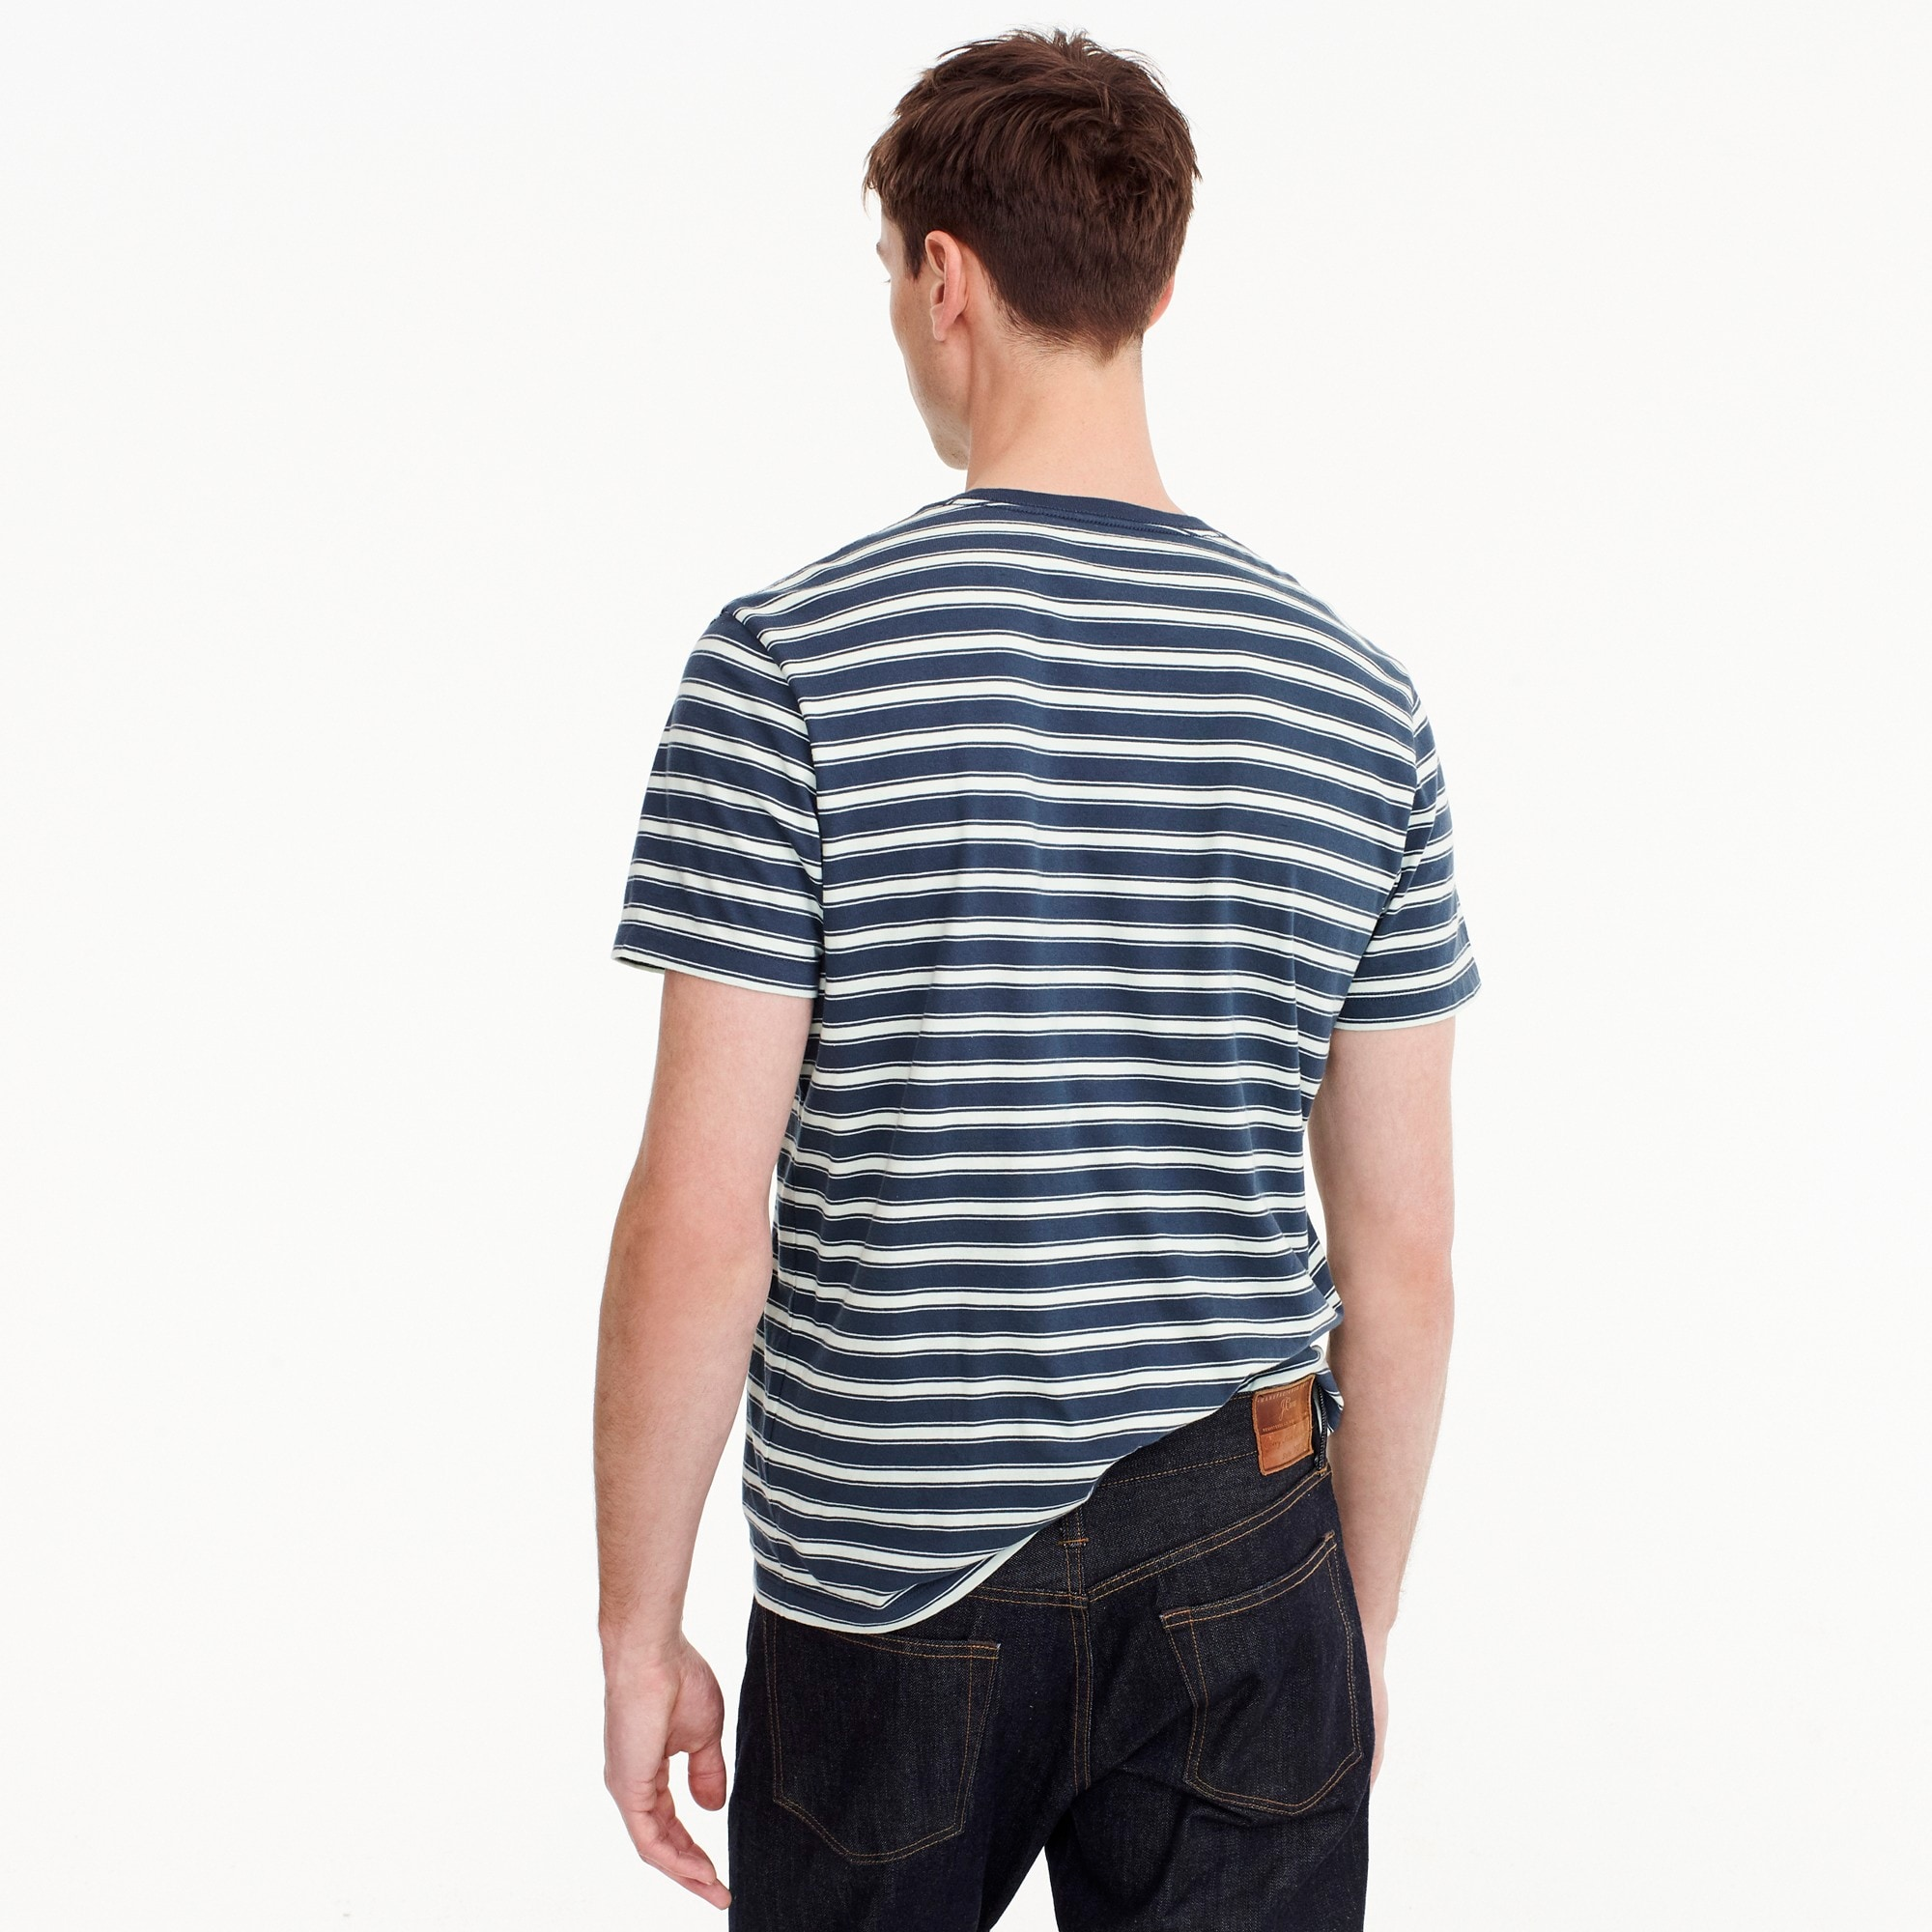 Image 2 for Tall J.Crew Mercantile Broken-in T-shirt in navy stripe